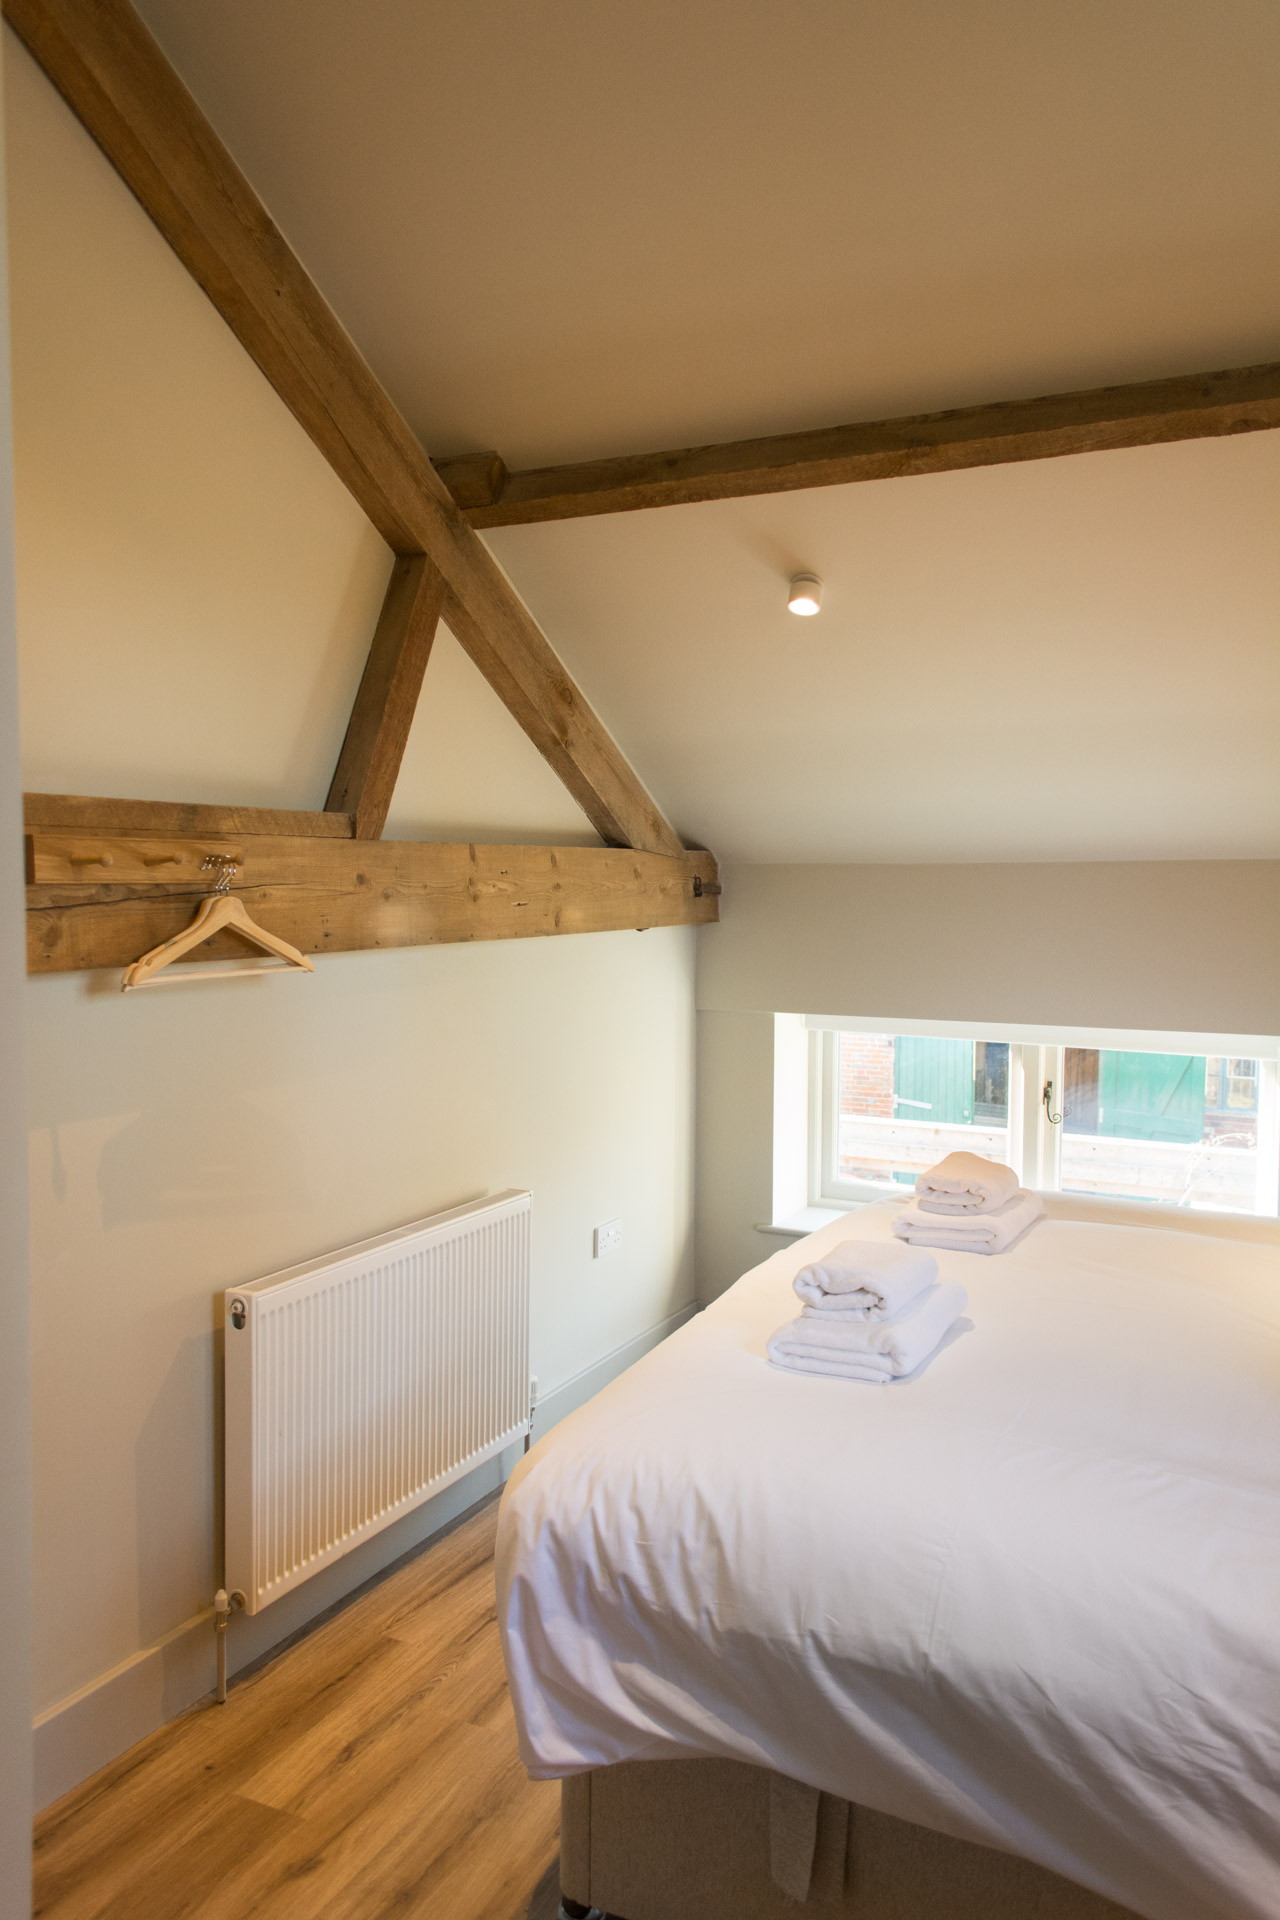 Super-king bedroom showing wooden beams on the walls and ceiling.